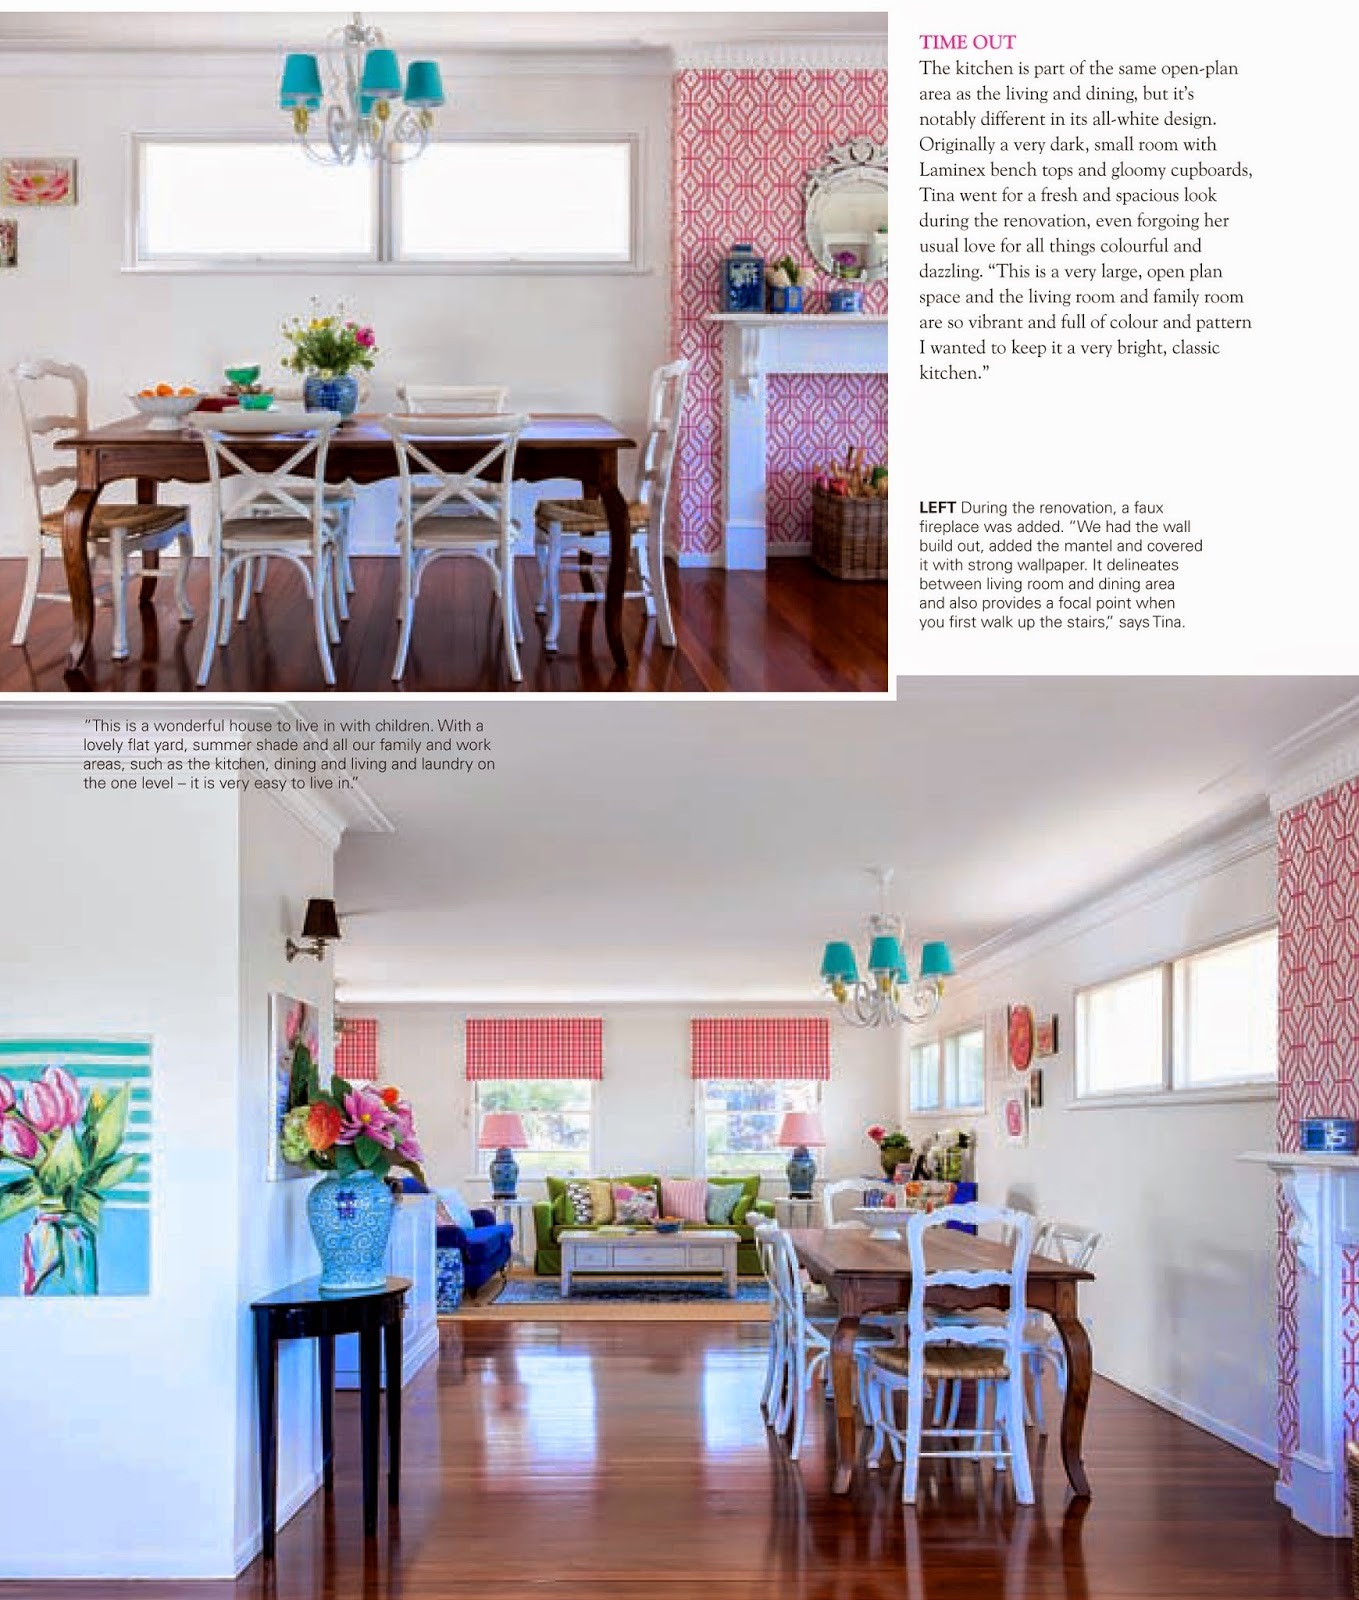 lady chatterley's affair: lca featured in modern home magazine